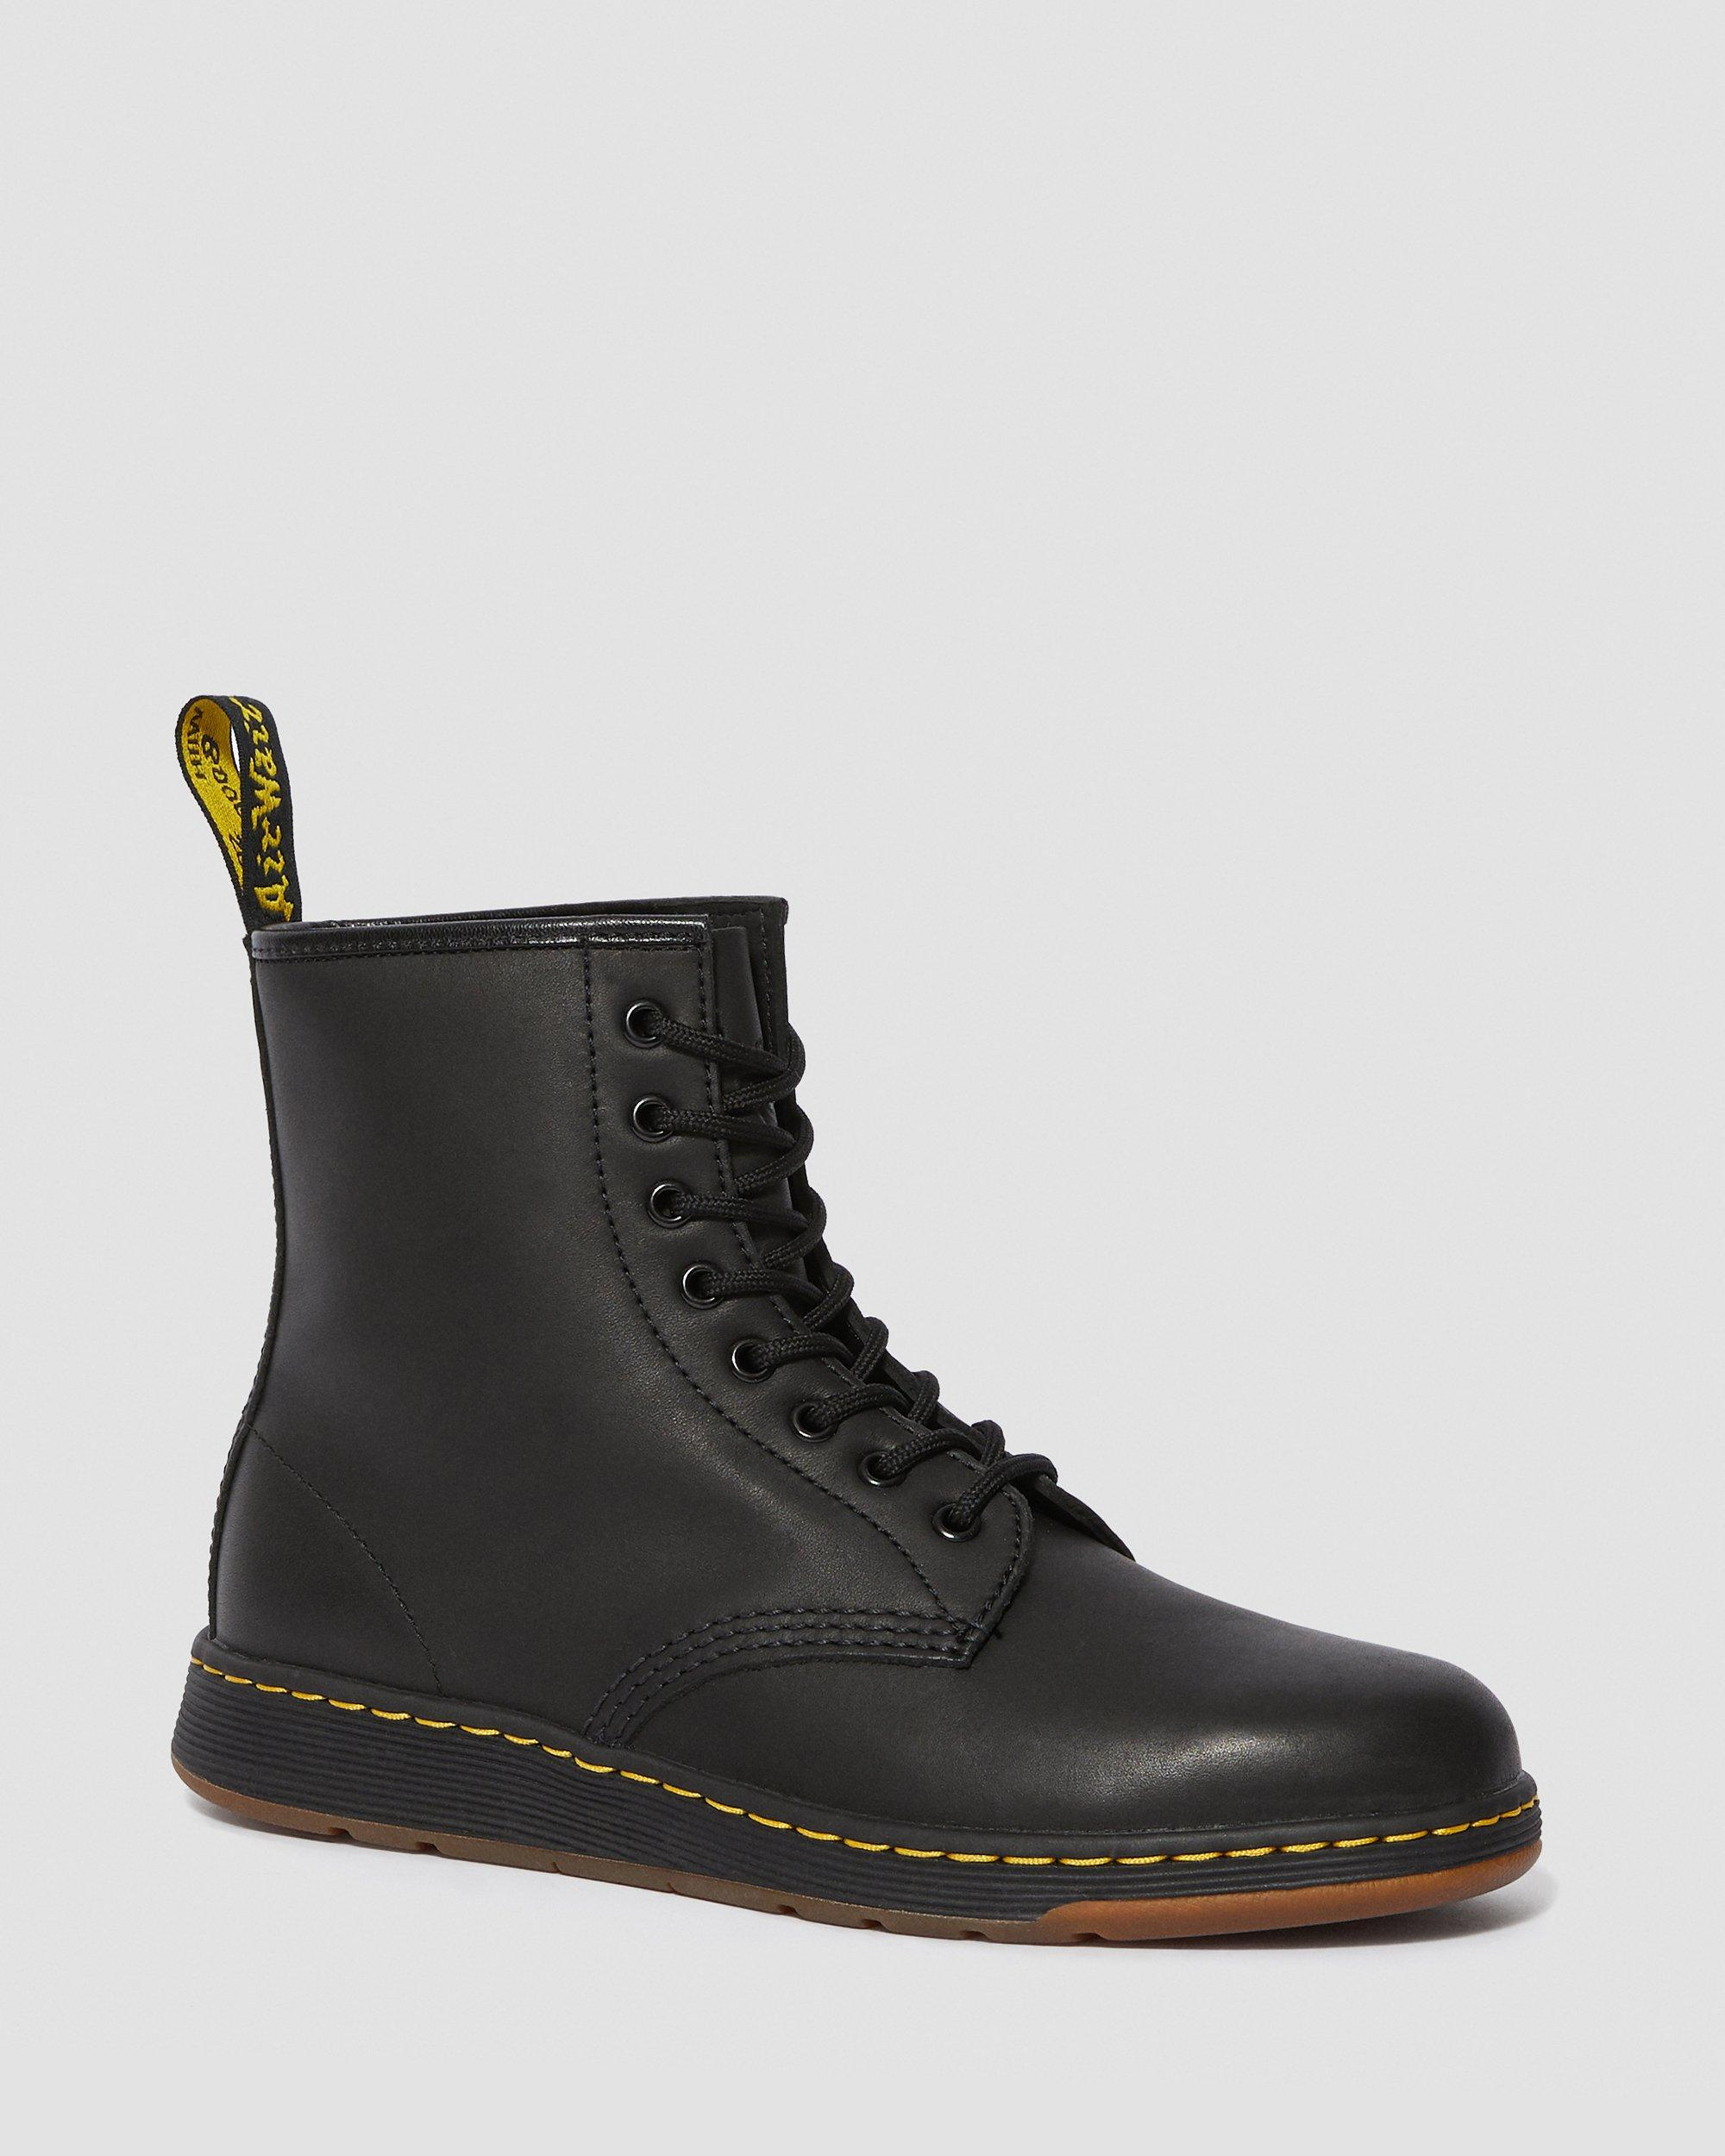 Dr Martens Boot 8 Eye MONO Black, 169,00 €